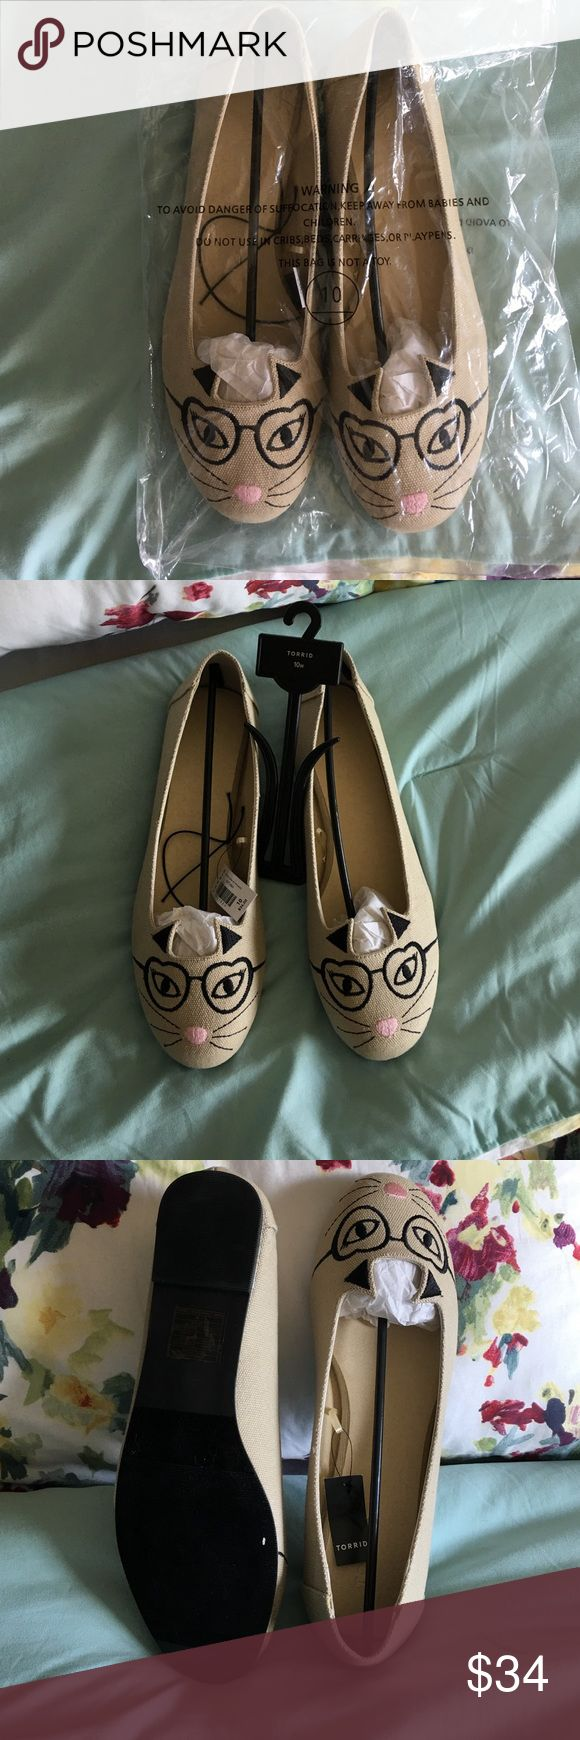 Kitty Kat Flats Cute Kitty Kat Flats! Never worn! New in bag. Size 10 however they were too big for me when I tried them on. They feel like an 11. Very stylish. Share your kitty kat love with the world! torrid Shoes Flats & Loafers